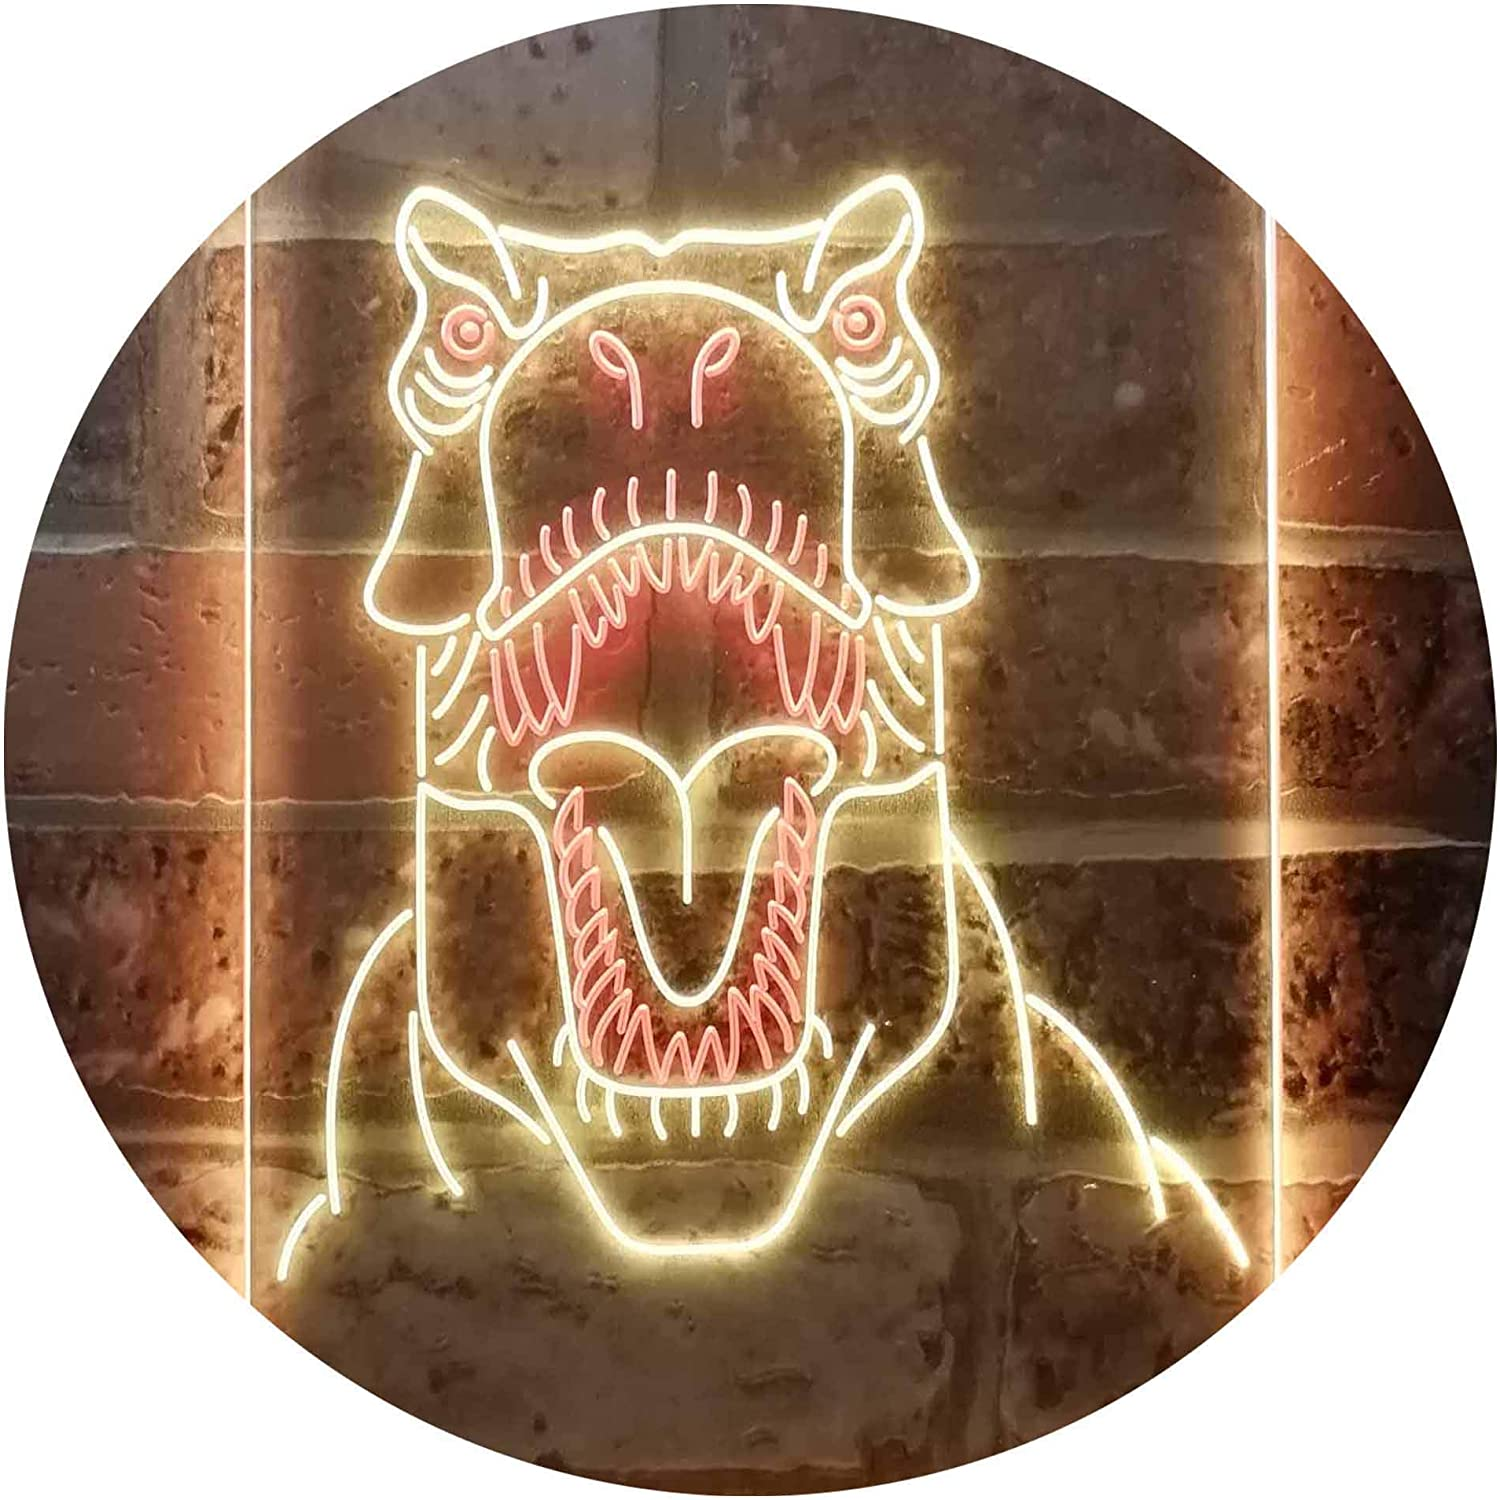 Dinosaur Animal Man Cave Dual Color LED 1 Neon Overseas parallel import regular item Red 25% OFF Sign Yellow